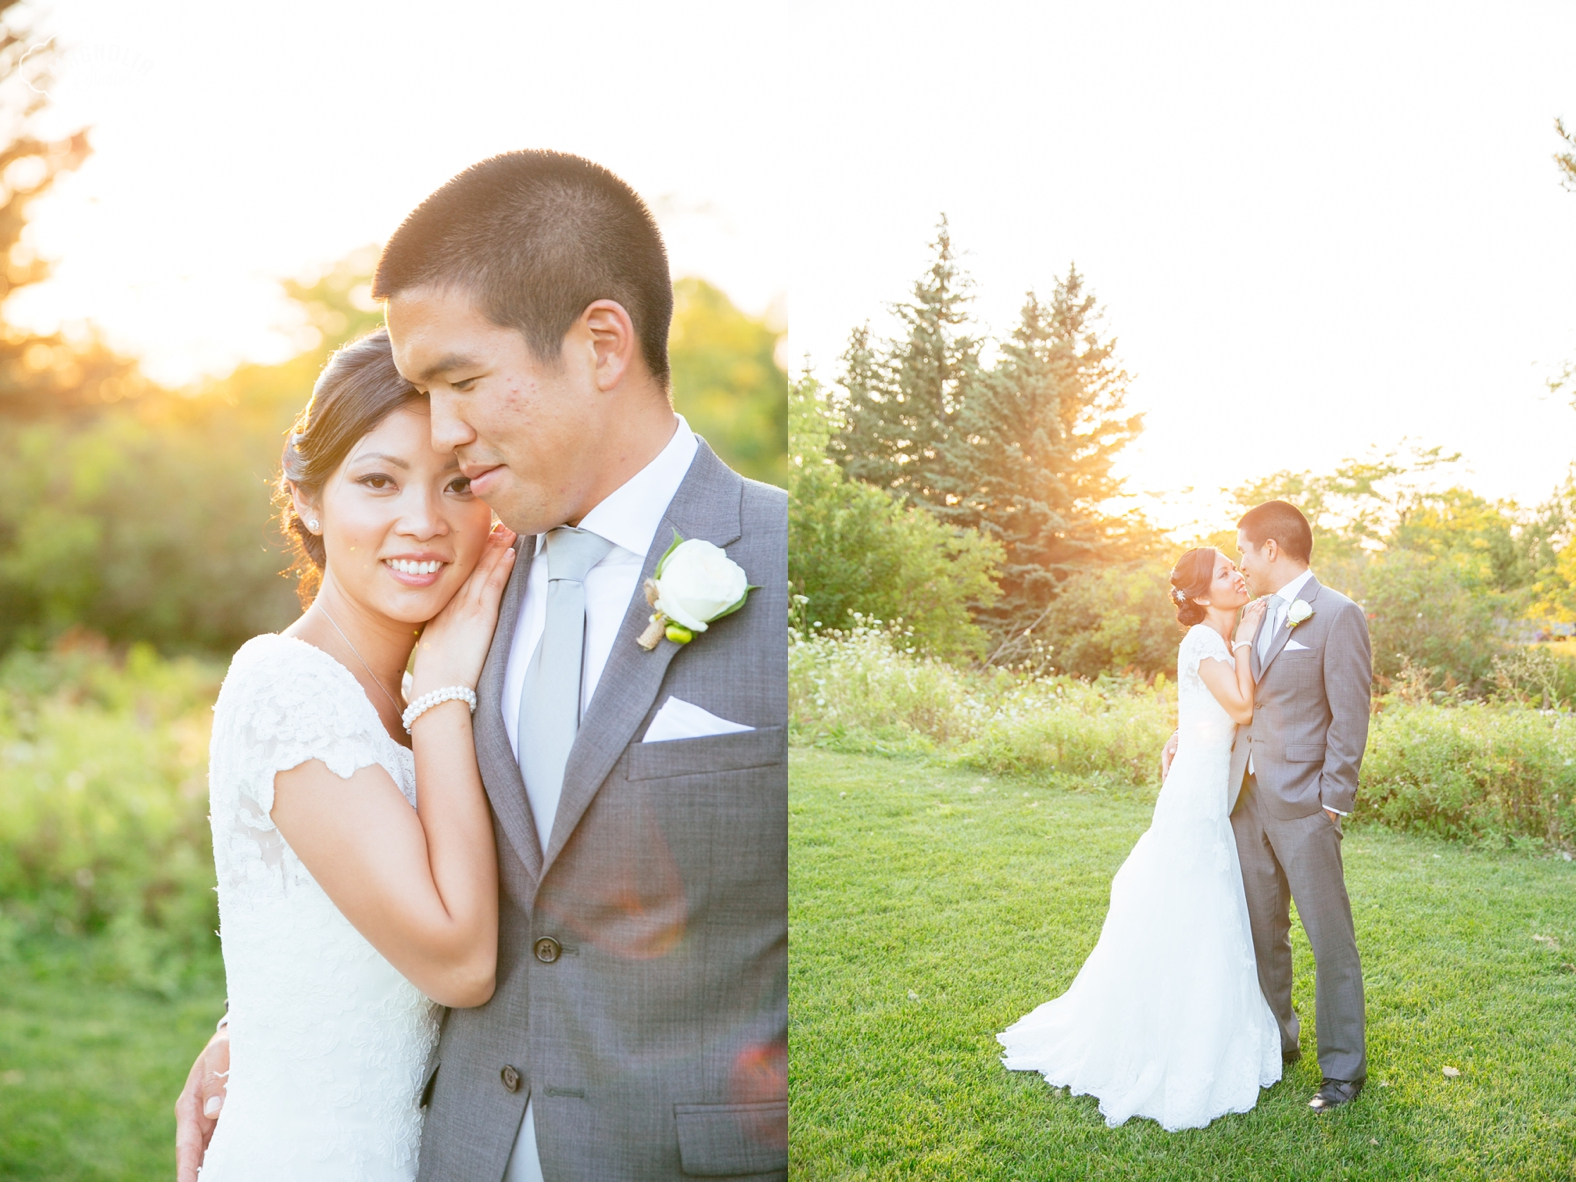 Magnolia_Studios_Wedding_0879